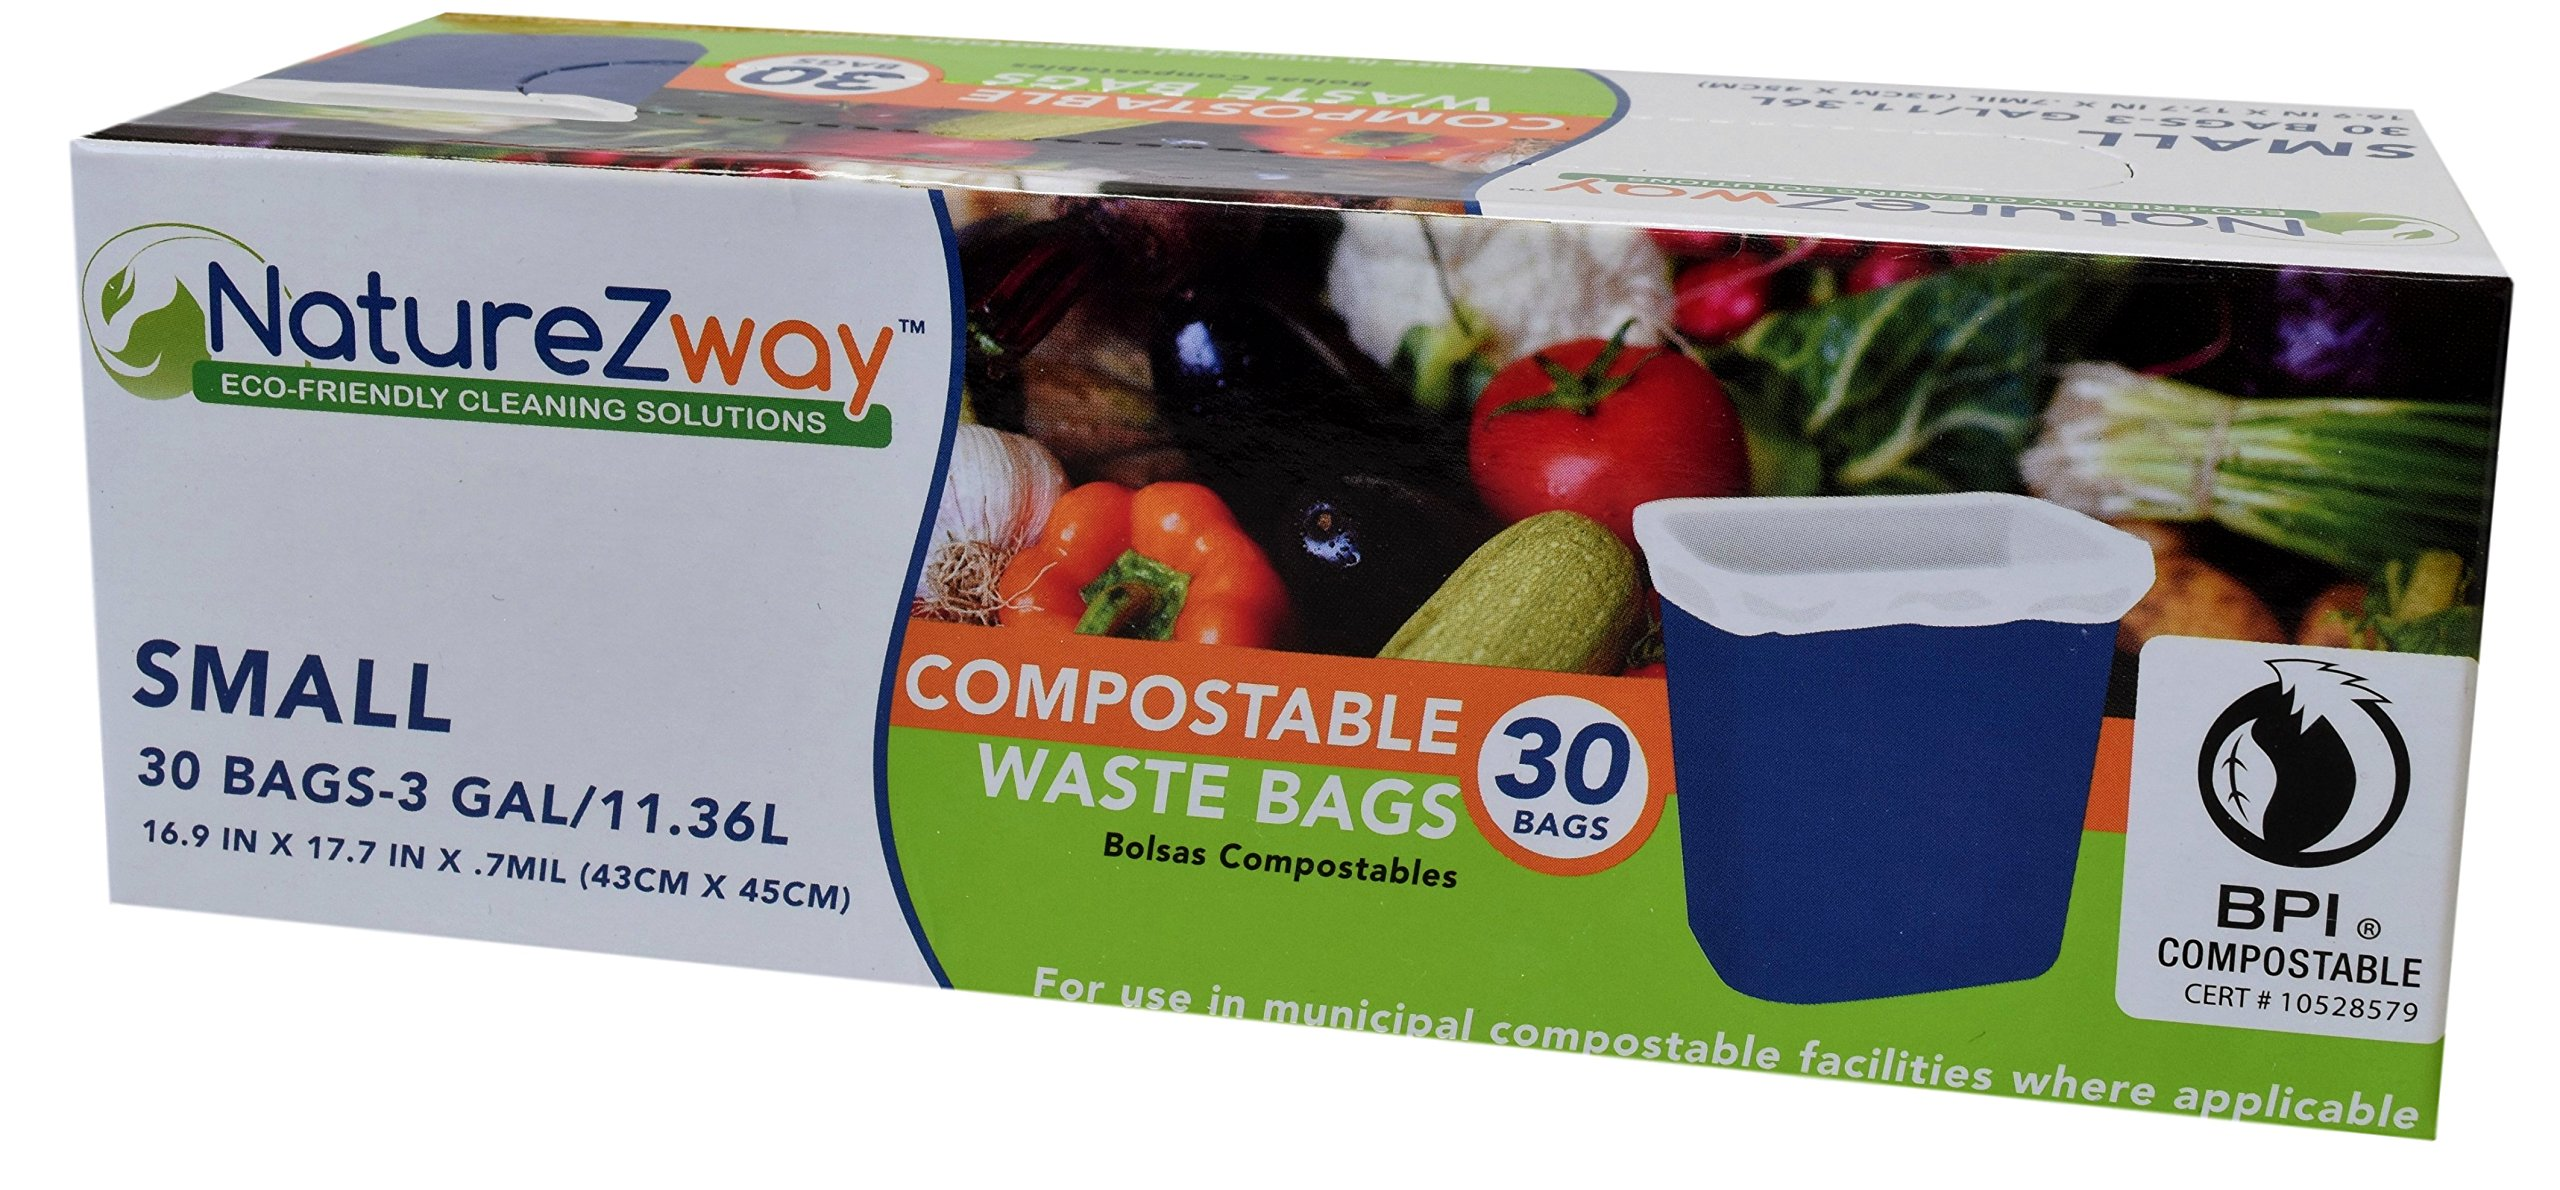 NatureZway - Small Compostable Waste Bags, 3 Gallon - 30 Count, Pack of 3